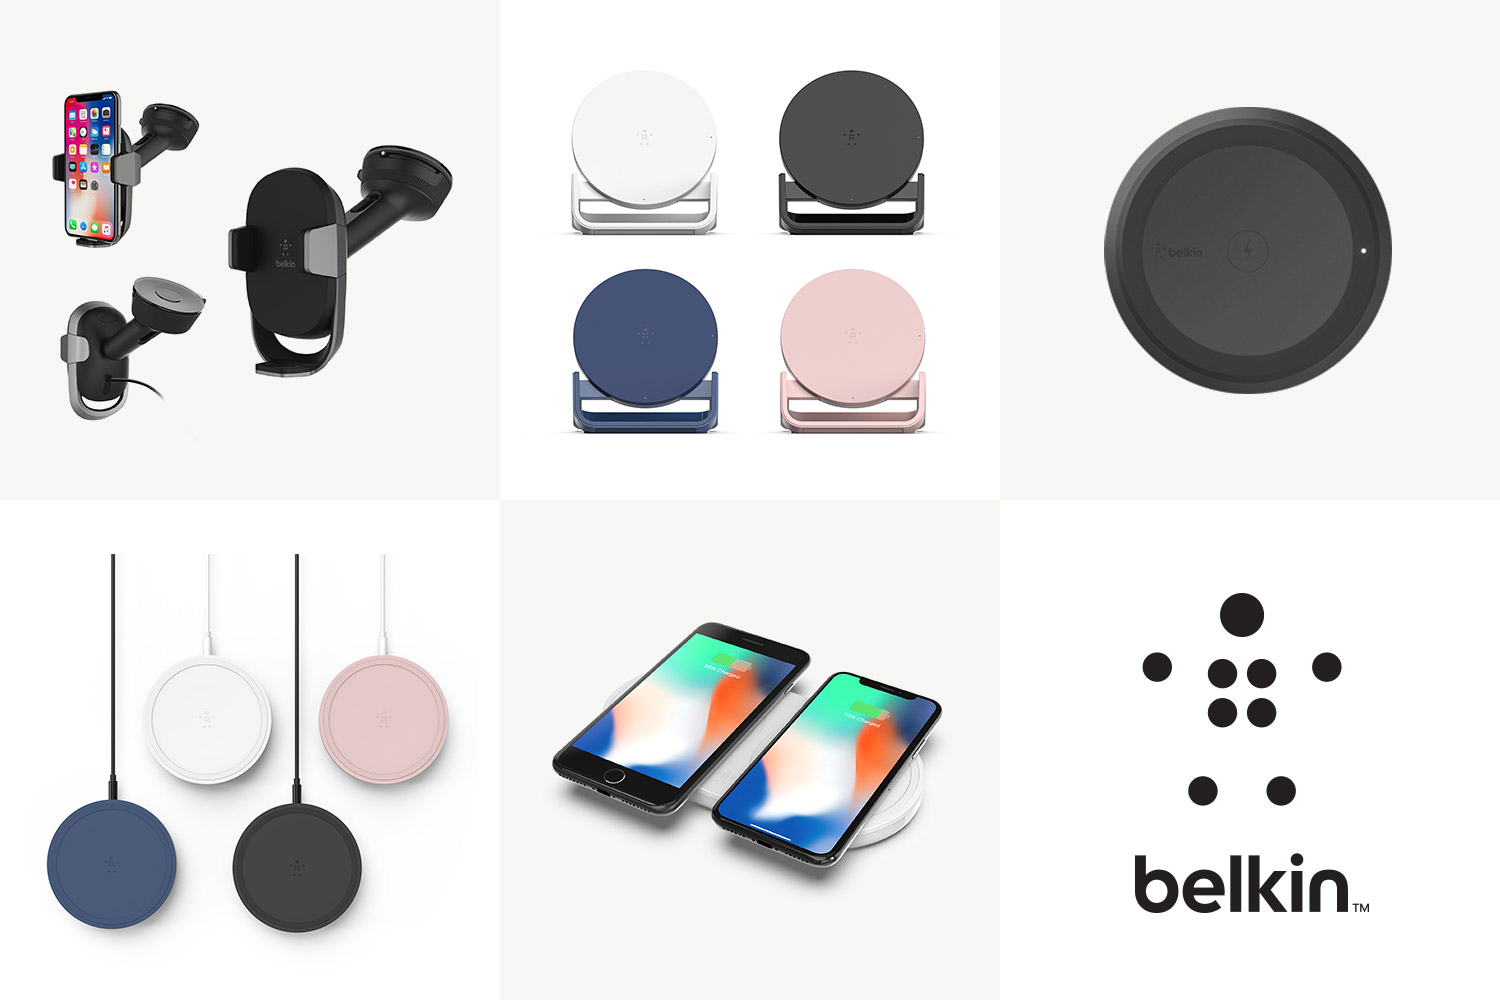 Belkin's new wireless chargers could be the ideal iPhone X powering pads